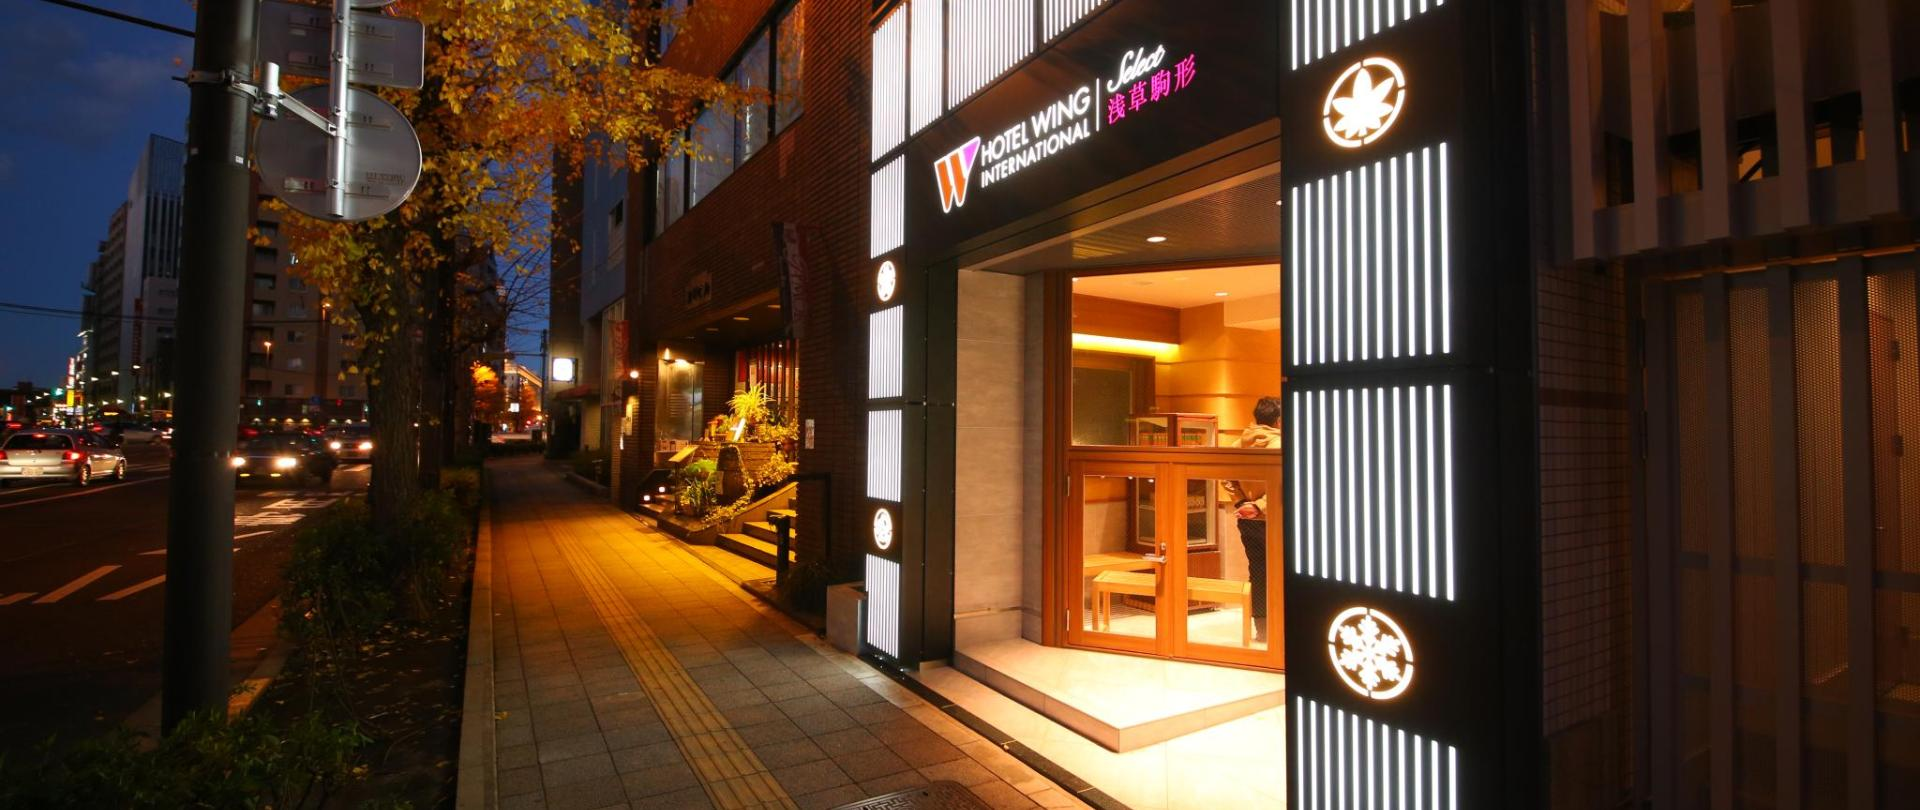 Hotel Wing International Select Asakusa Komagata